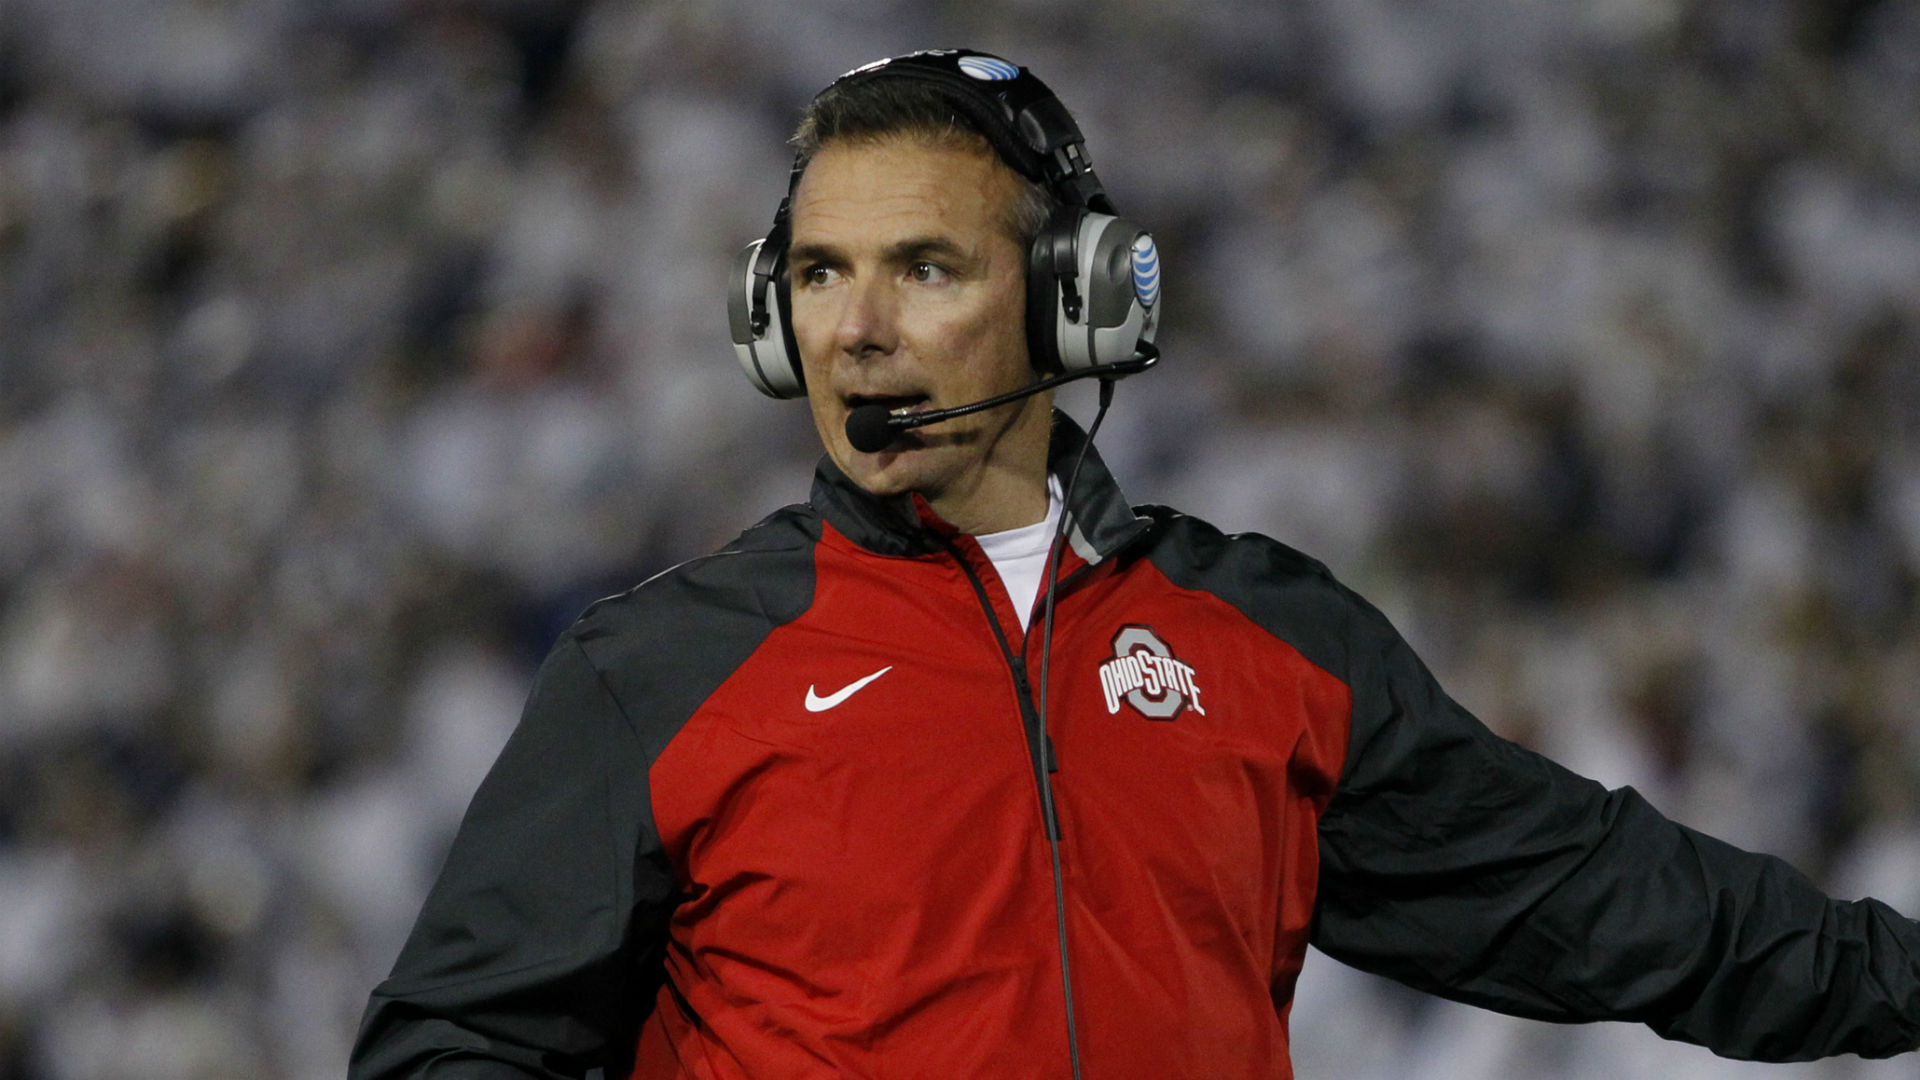 urban-meyer-112514-ftr-getty.jpg